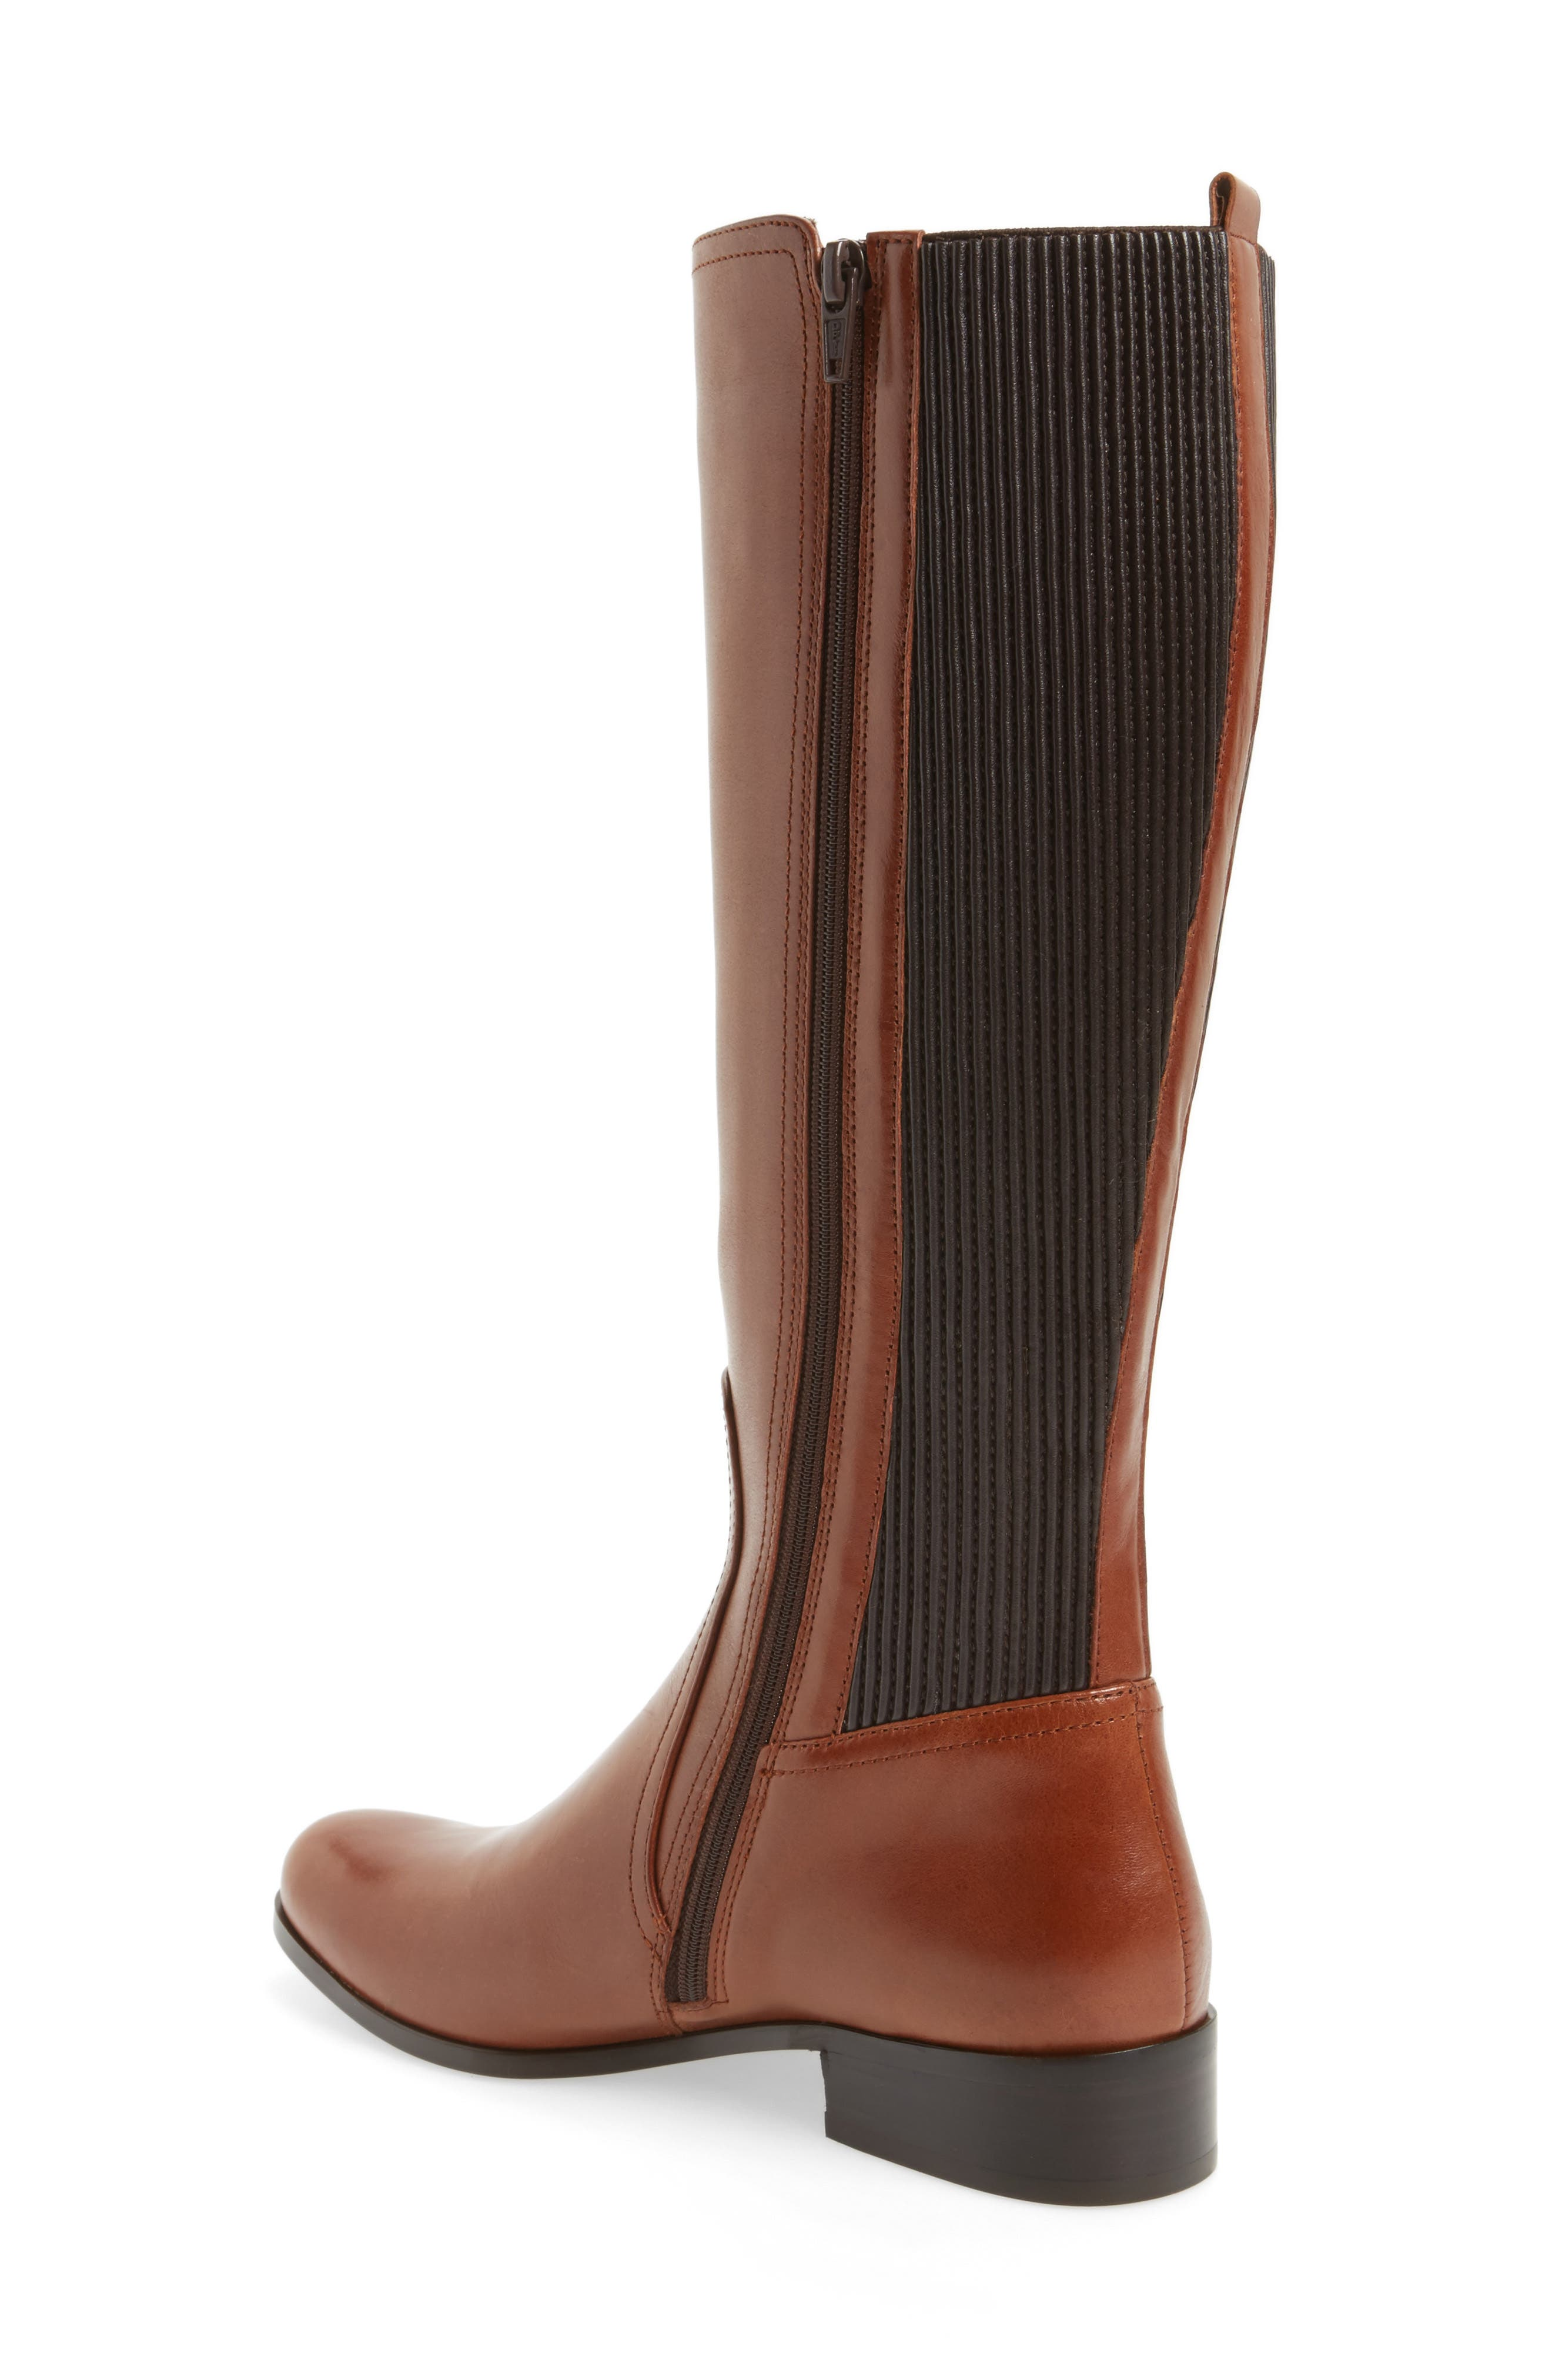 Rebel Tall Boot,                             Alternate thumbnail 2, color,                             Tan Leather